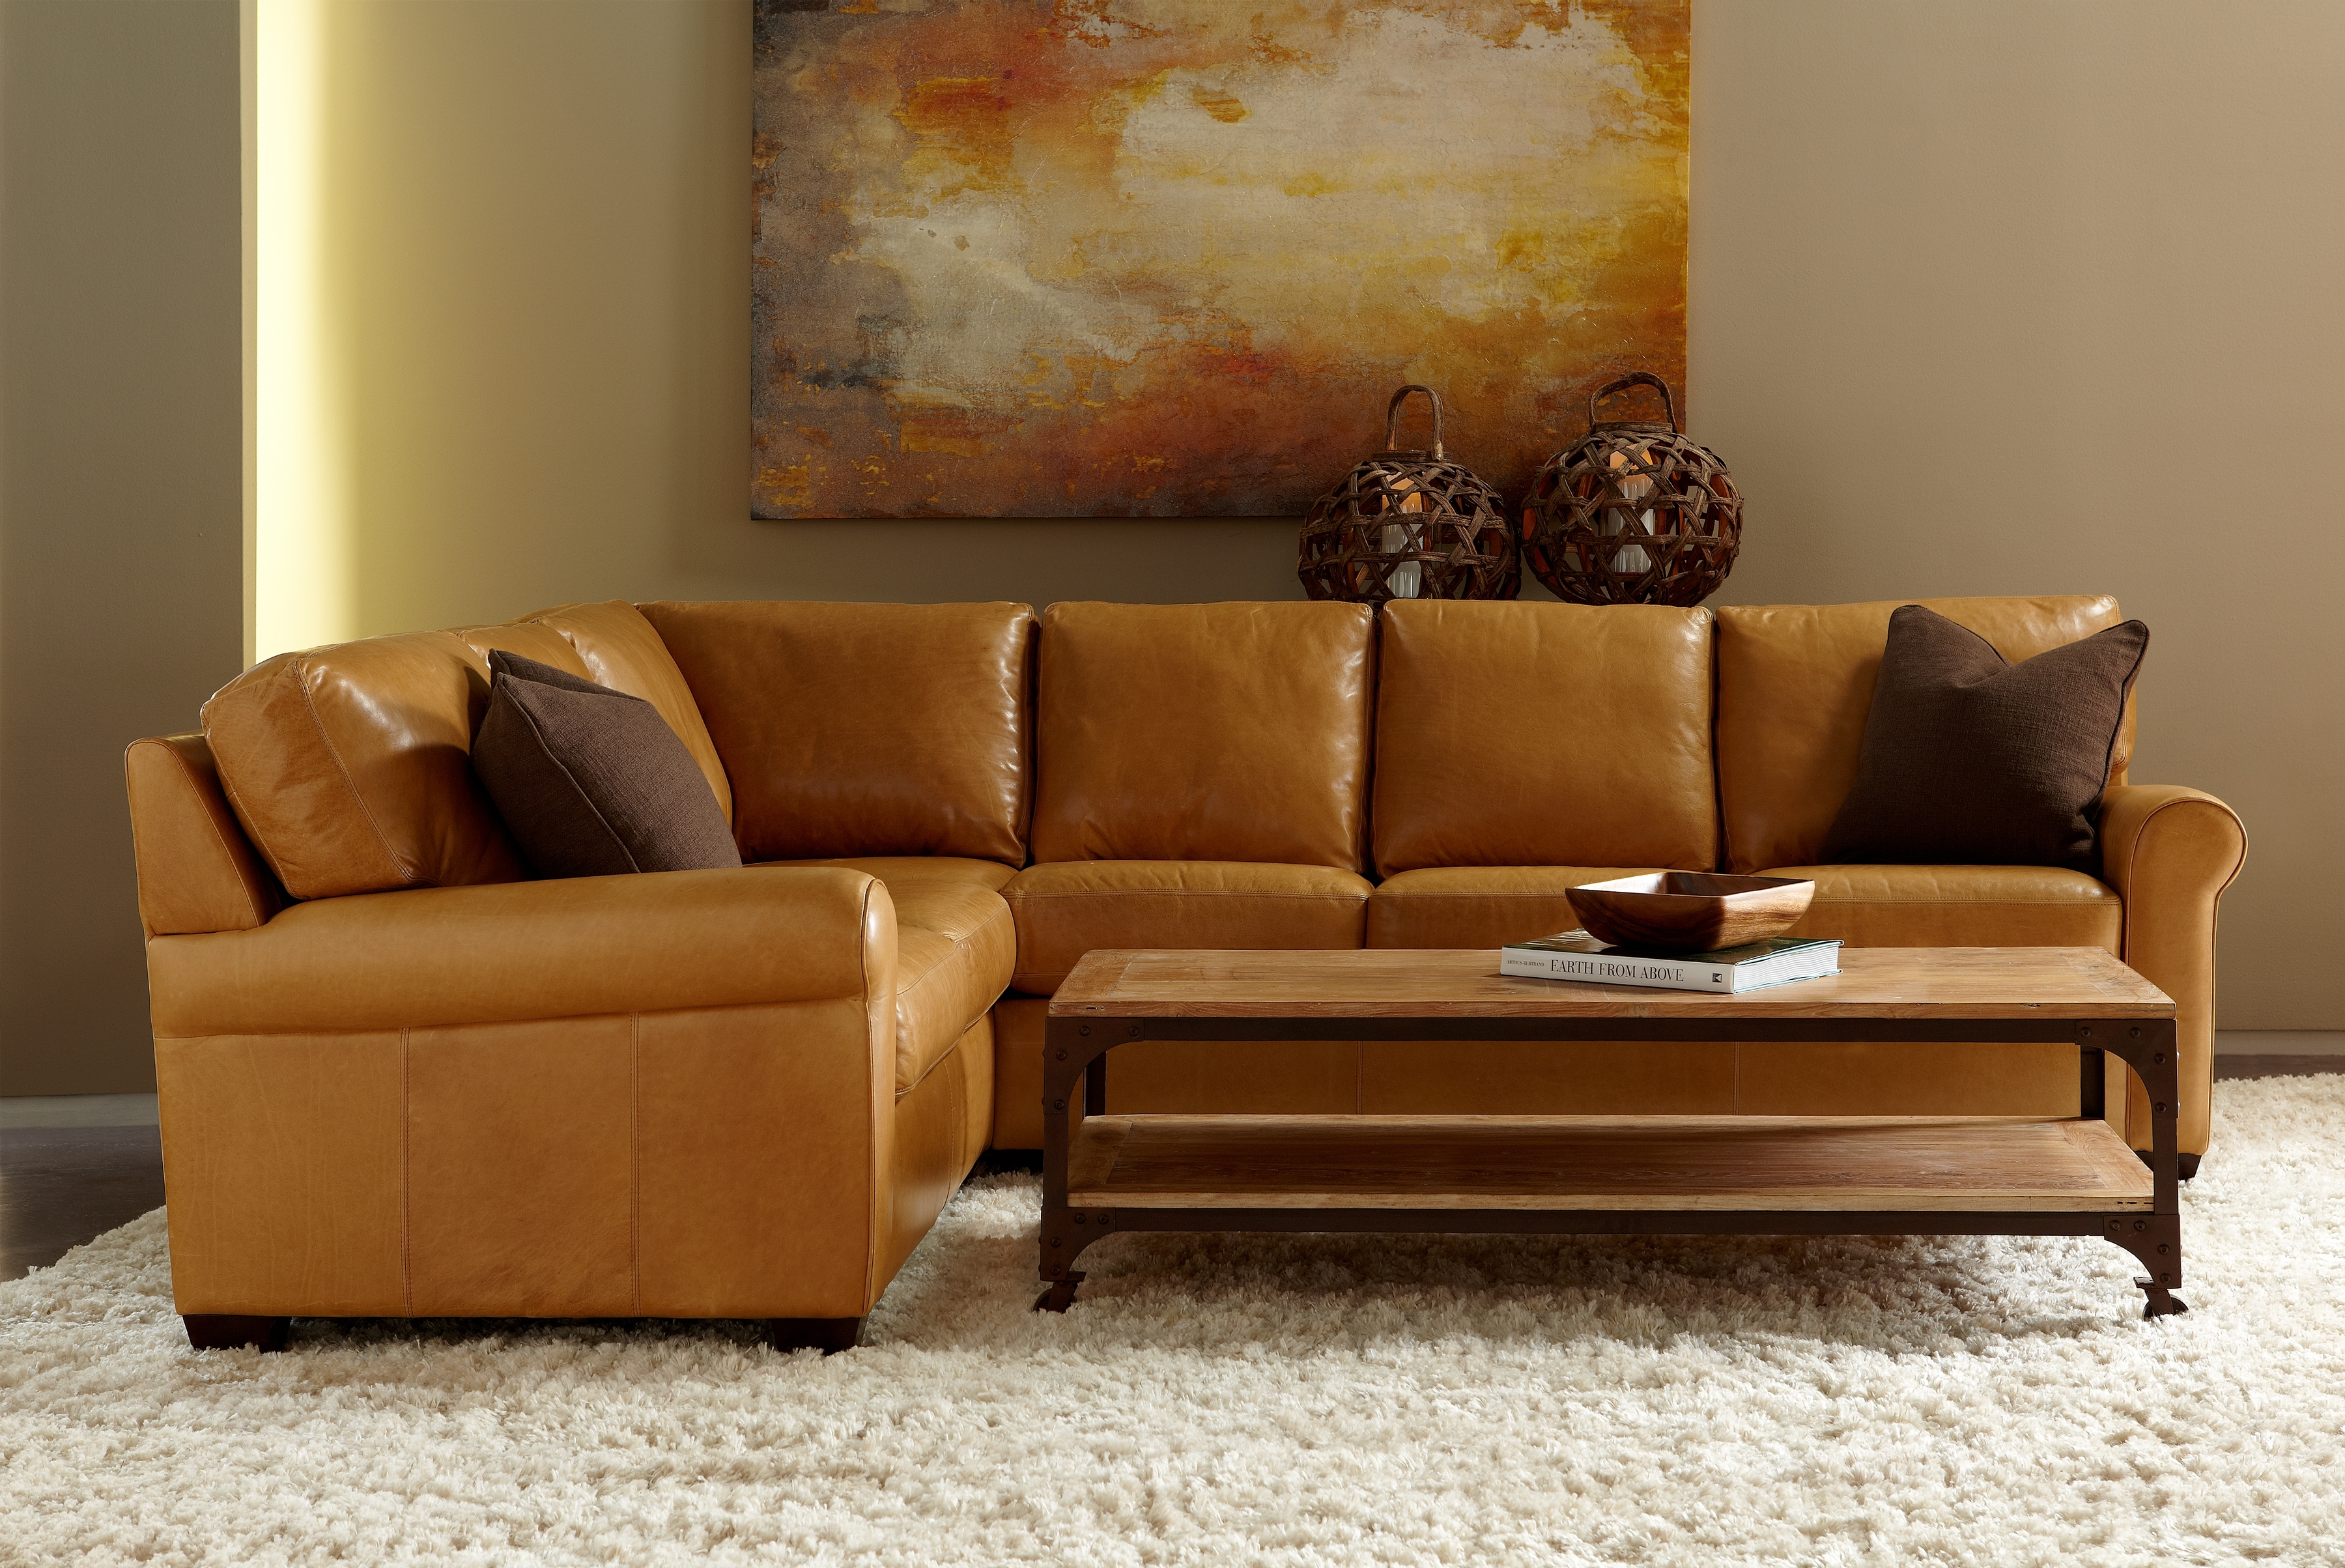 Sectional Sofas – Elegance And Style Tailored Just For Youand Intended For Made In Usa Sectional Sofas (View 2 of 10)